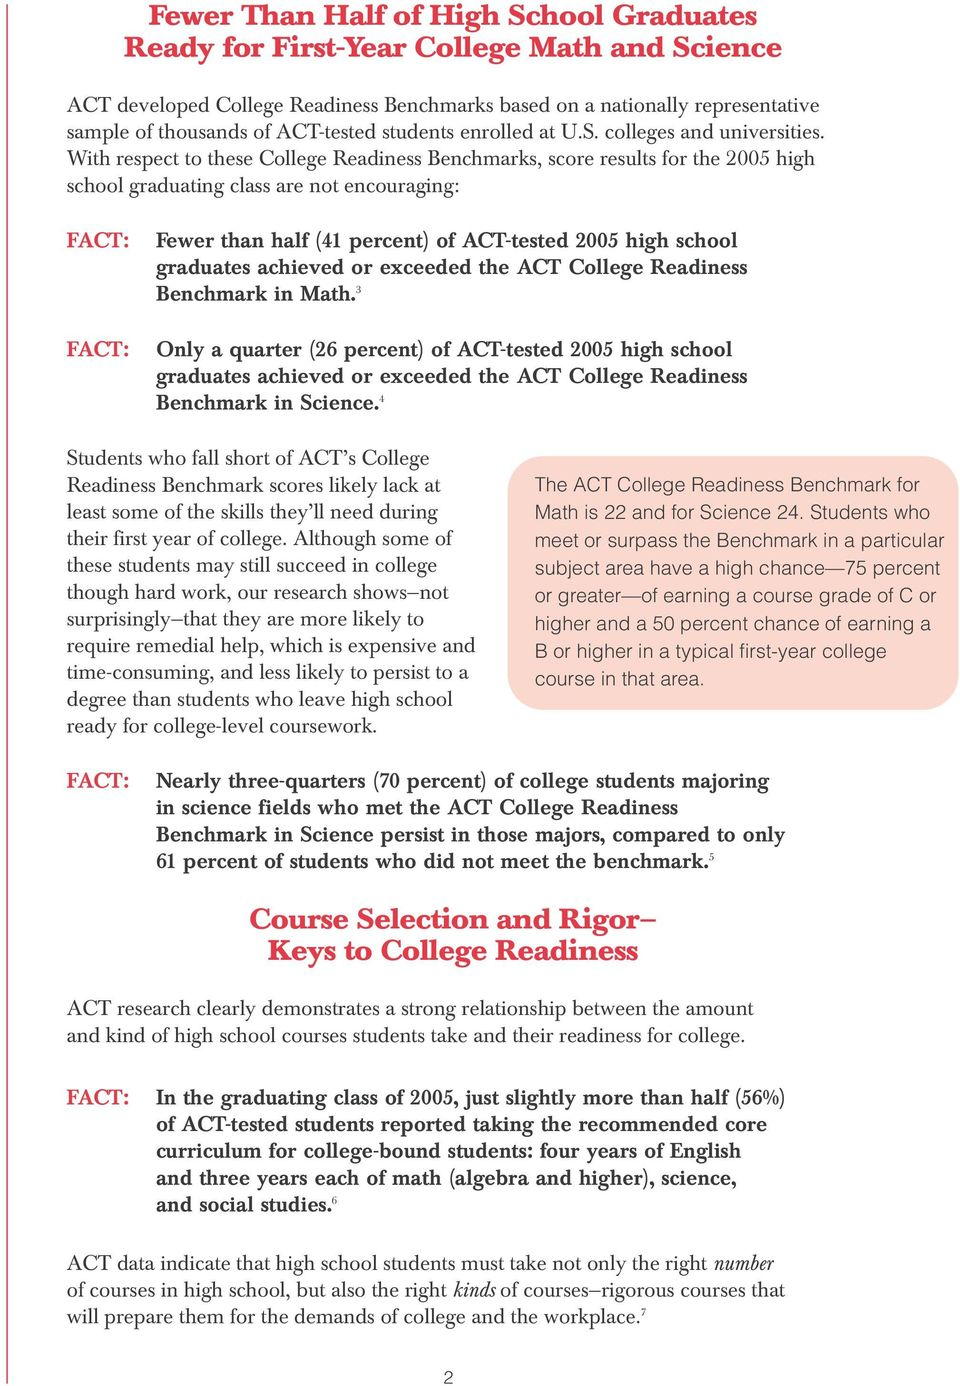 With respect to these College Readiness Benchmarks, score results for the 2005 high school graduating class are not encouraging: Fewer than half (41 percent) of ACT-tested 2005 high school graduates